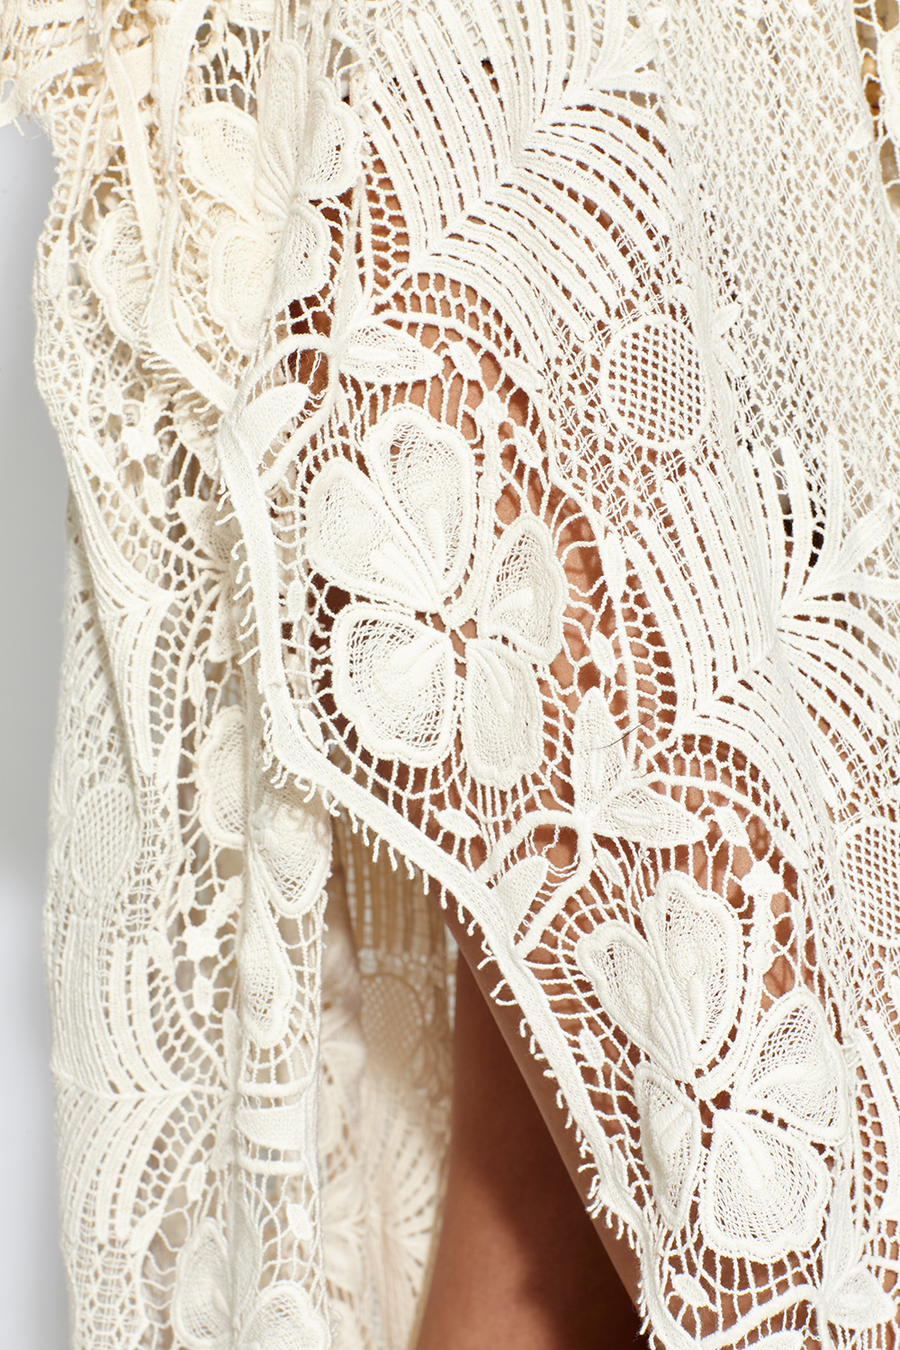 This is a detail photo of natural colored lace on a caftan. The lace detail shows flowers with pineapple and palm details.